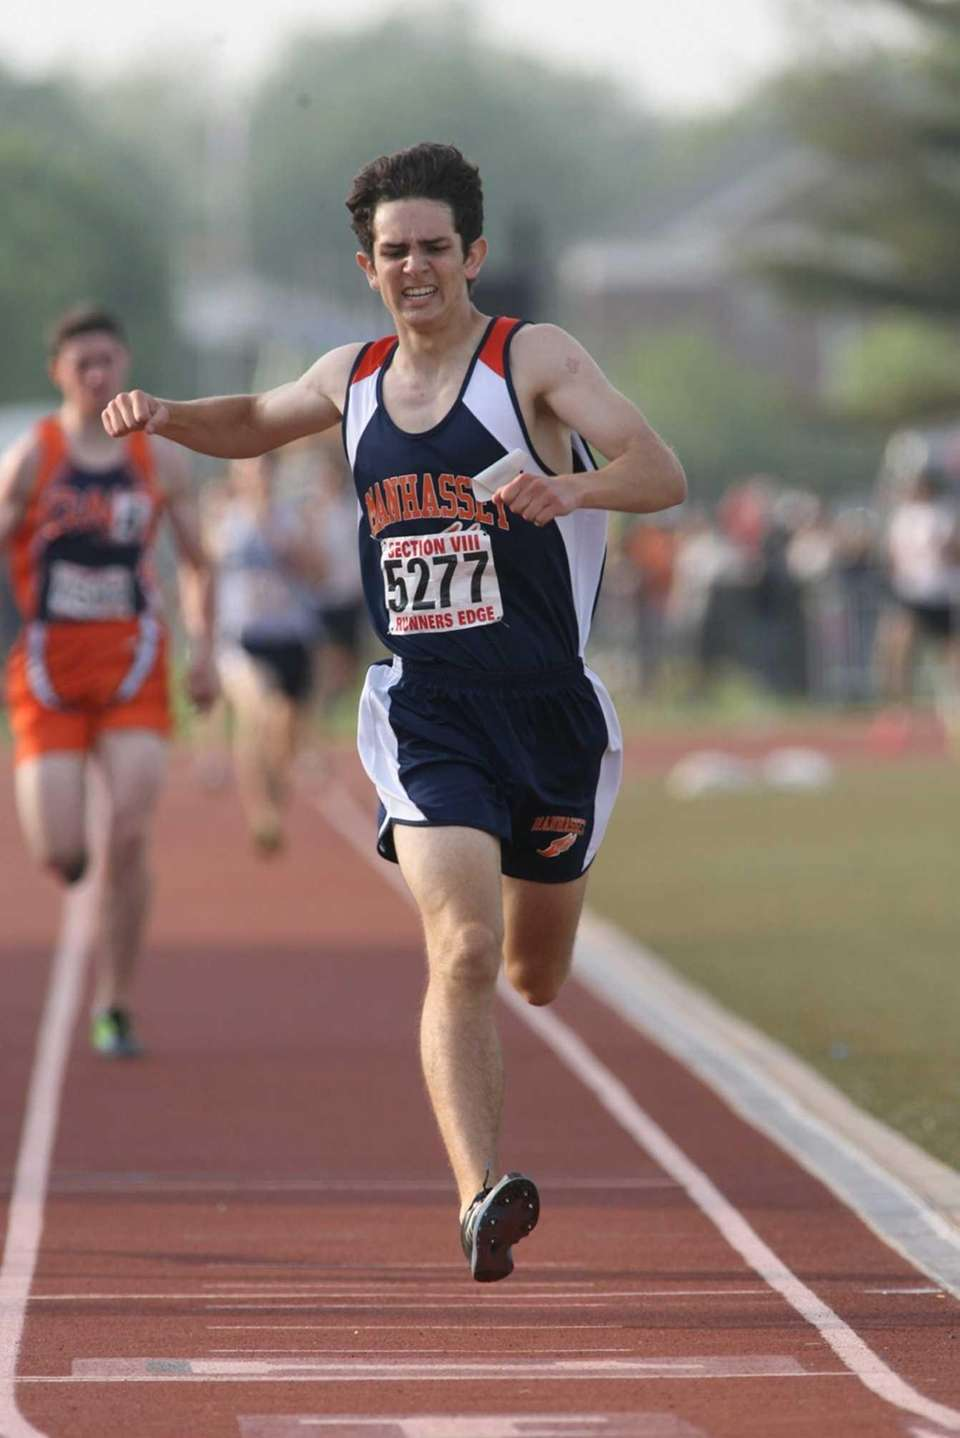 Manhasset's Stephen Bourguet wins the boys' class II-A